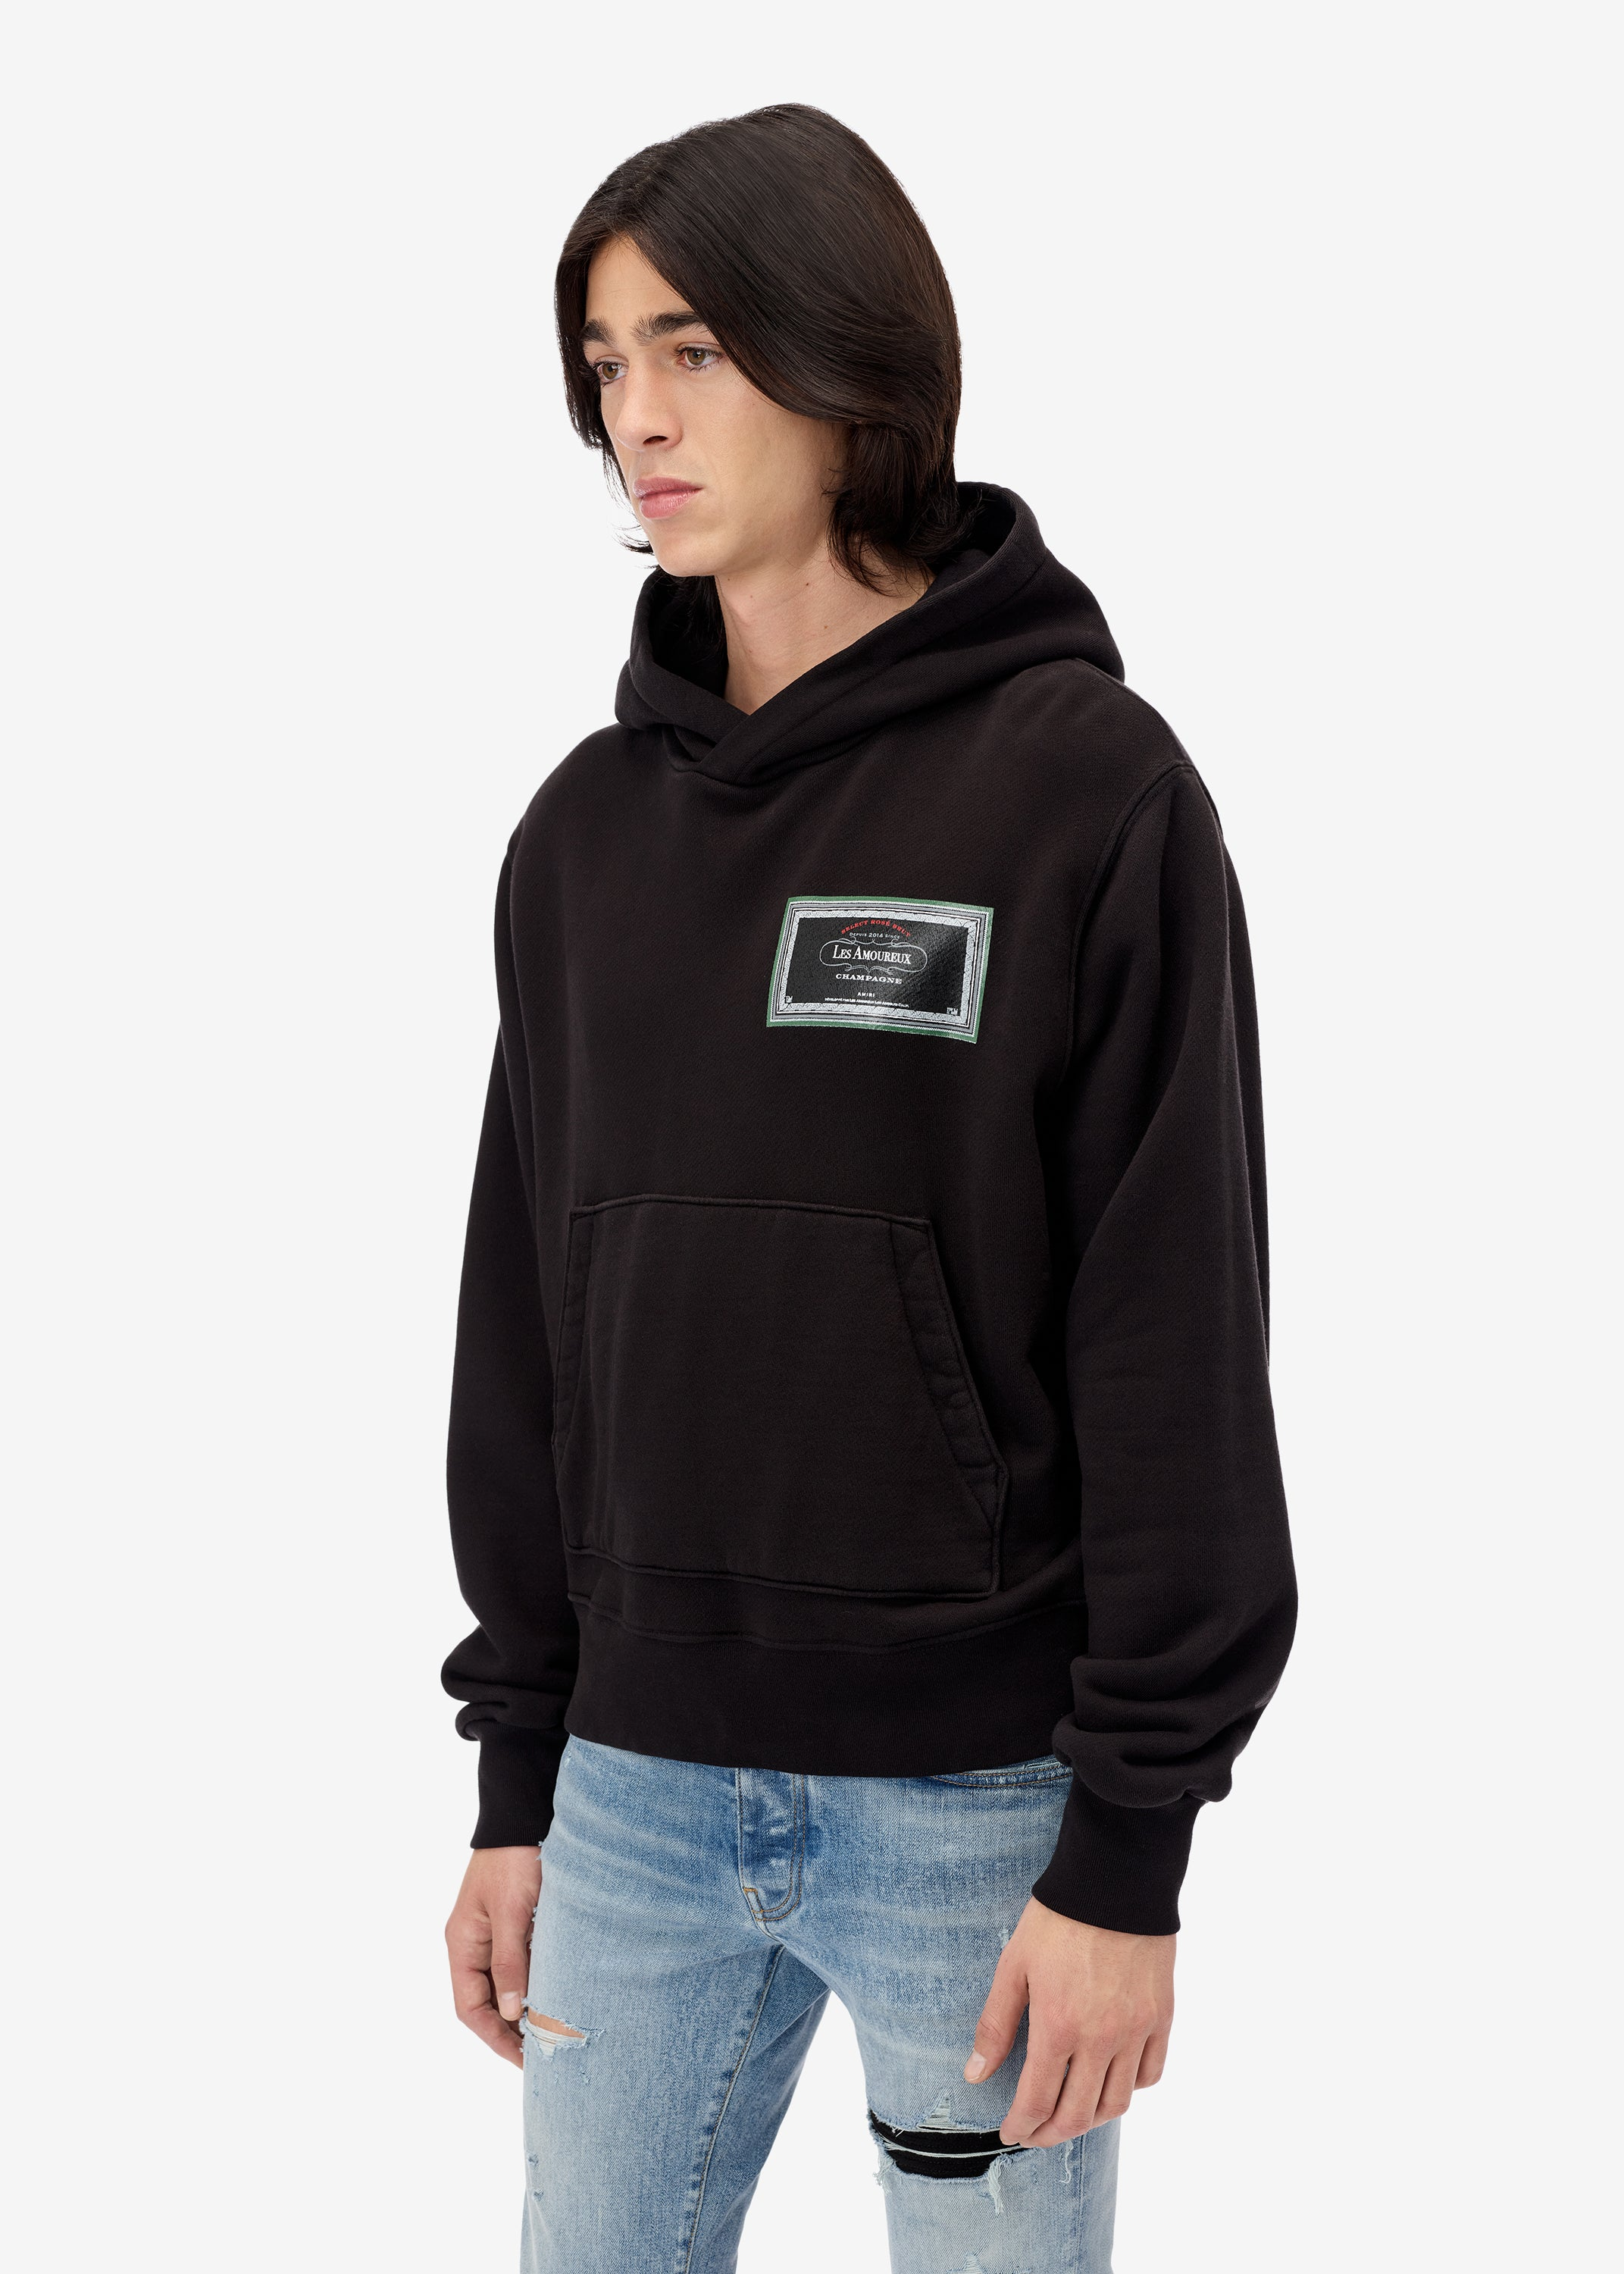 les-amoureux-gel-label-hoodie-web-exclusive-black-image-2